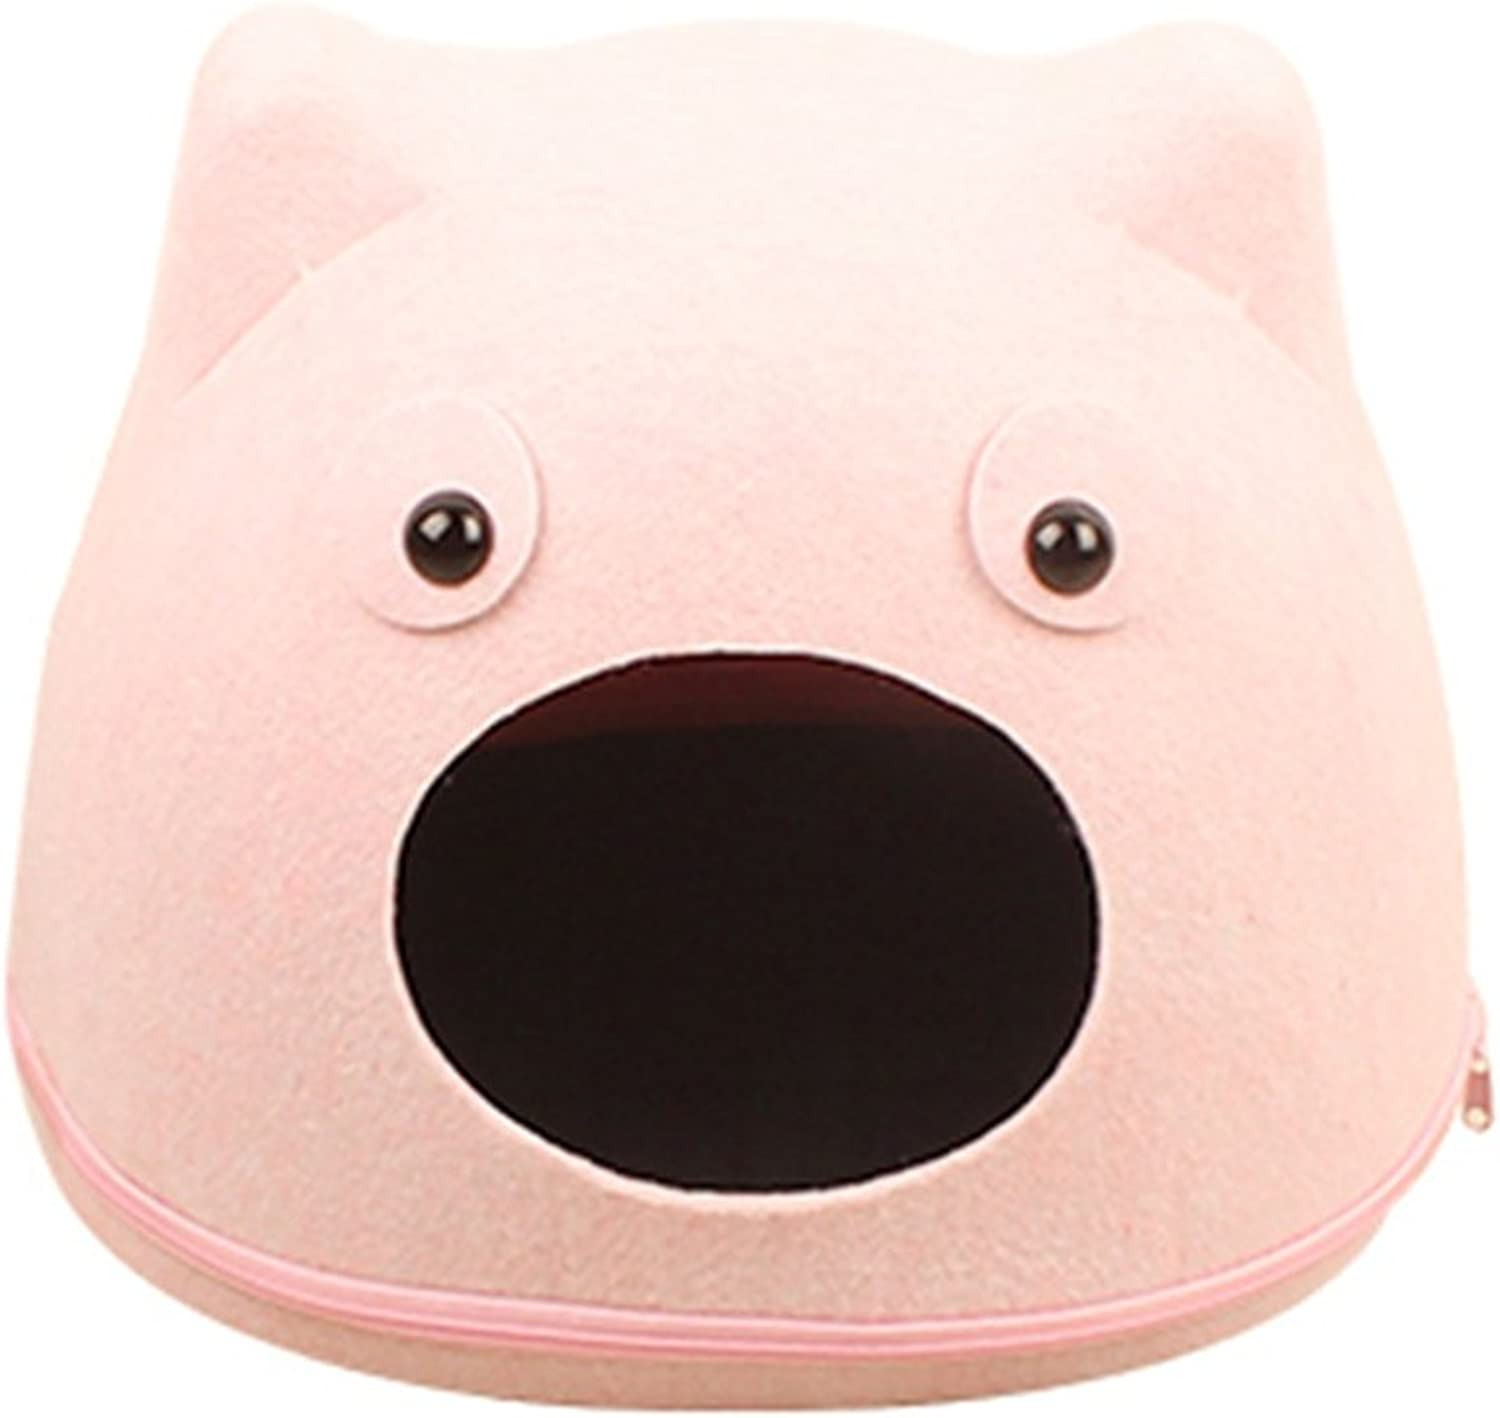 Cartoon cat face Felt cat Litter Autumn and Winter Blankets Removable Washable Cotton nest Felt nest Small Animal Beds (color   Pink, Size   OneSize)